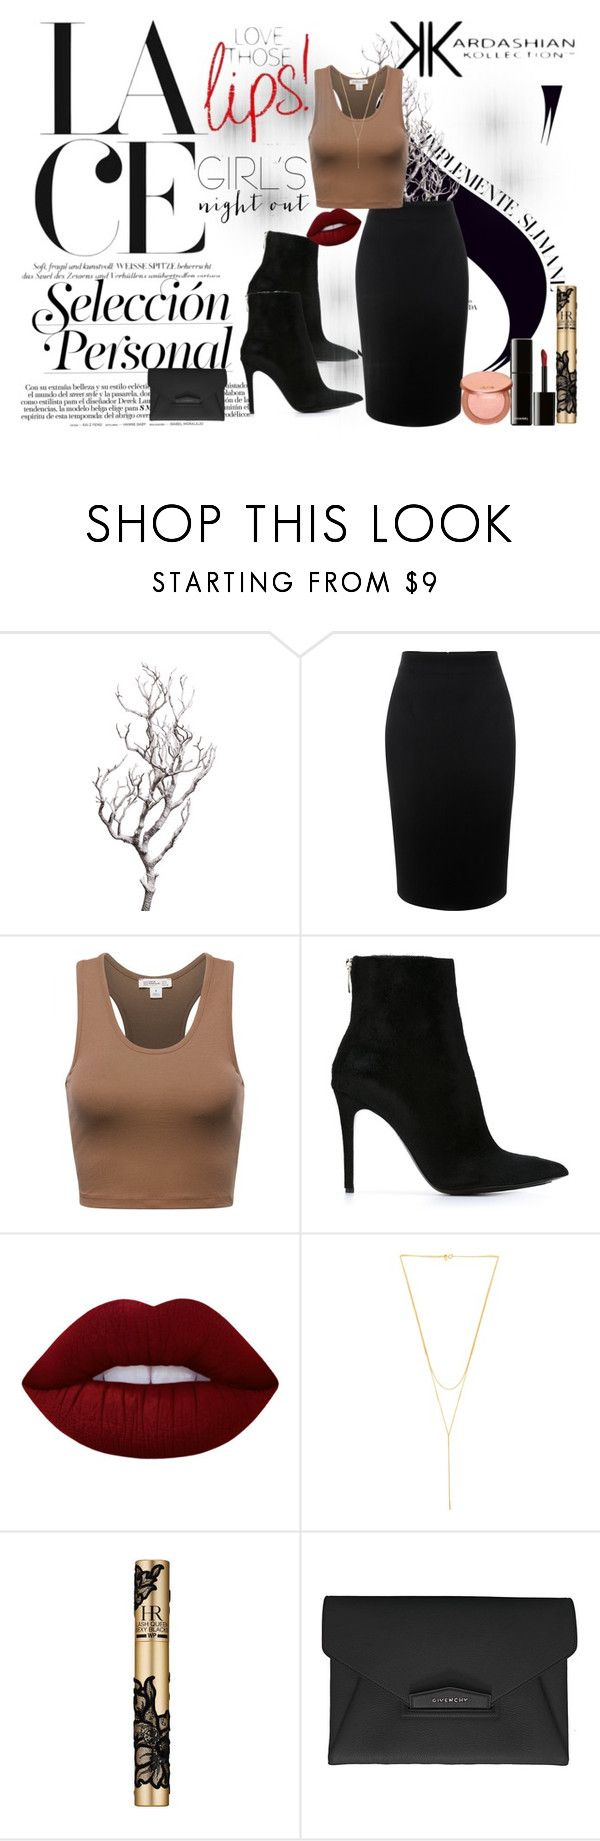 """KK"" by camilaveine ❤ liked on Polyvore featuring Kardashian Kollection, Amara, Alexander McQueen, Barbara Bui, Lime Crime, Gorjana, Helena Rubenstein, Chanel, Givenchy and tarte"